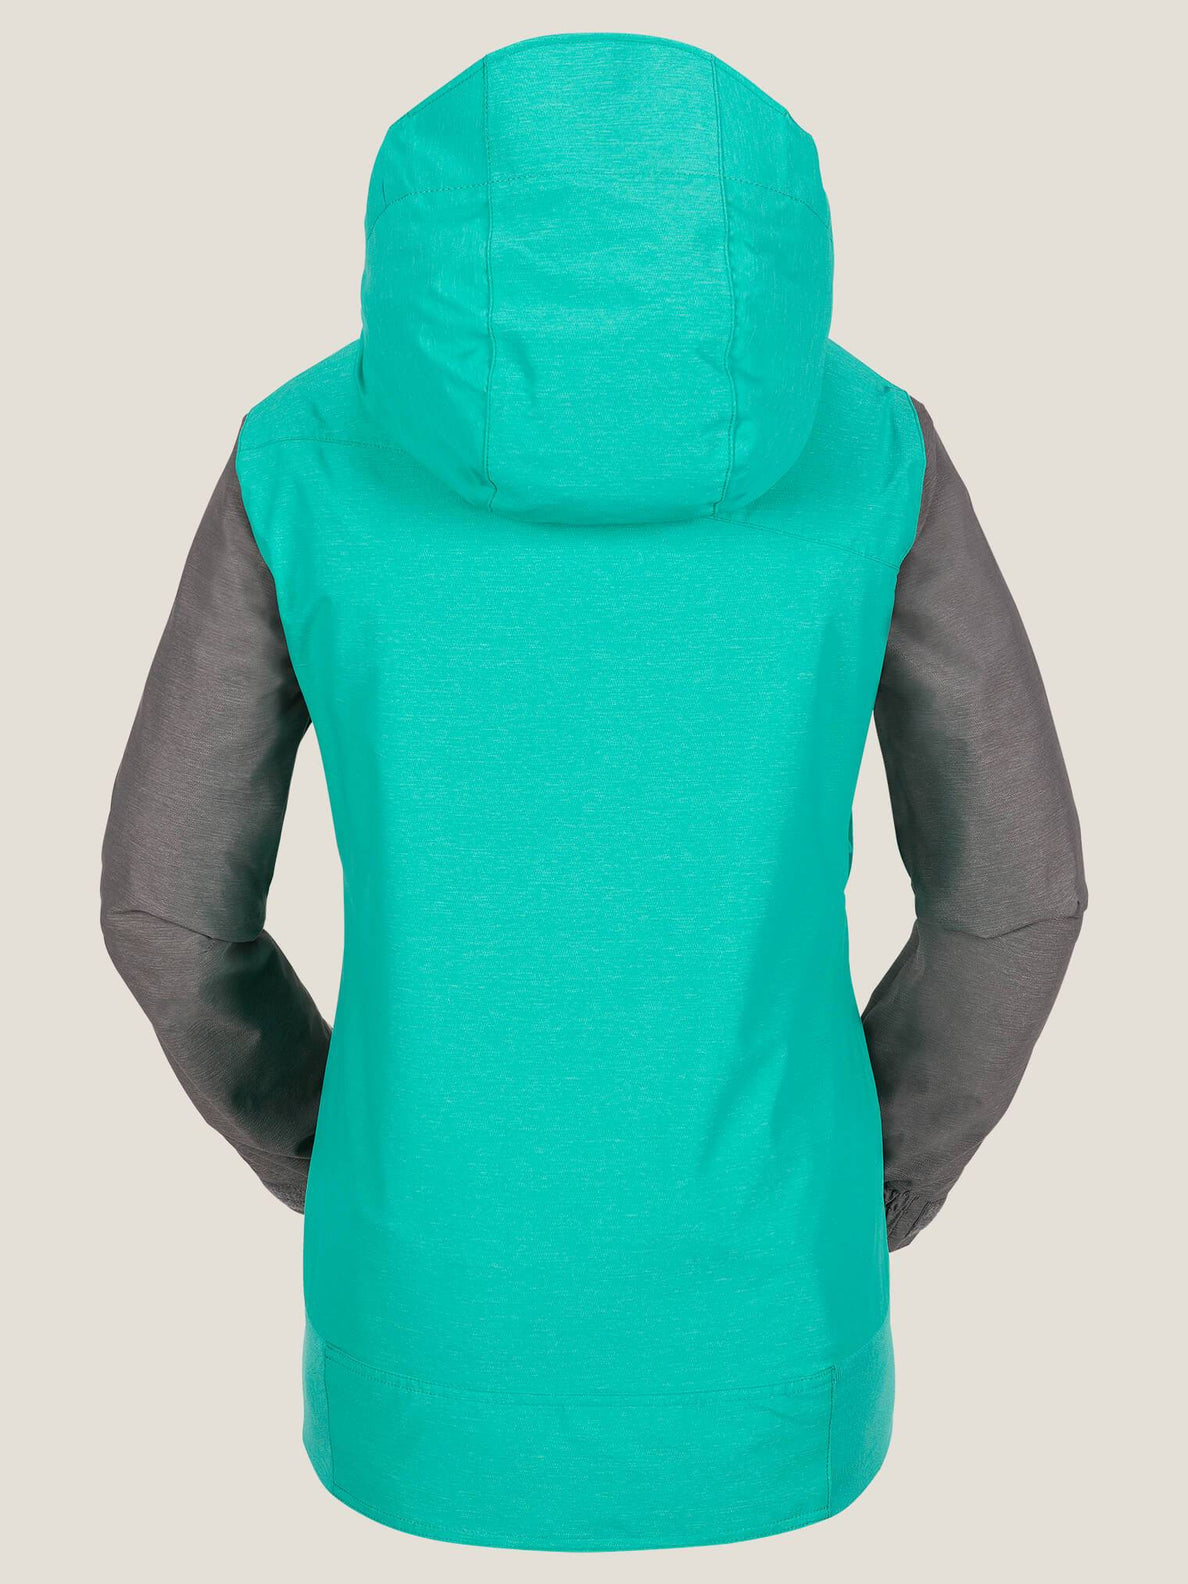 Stave Jacket In Teal Green, Back View